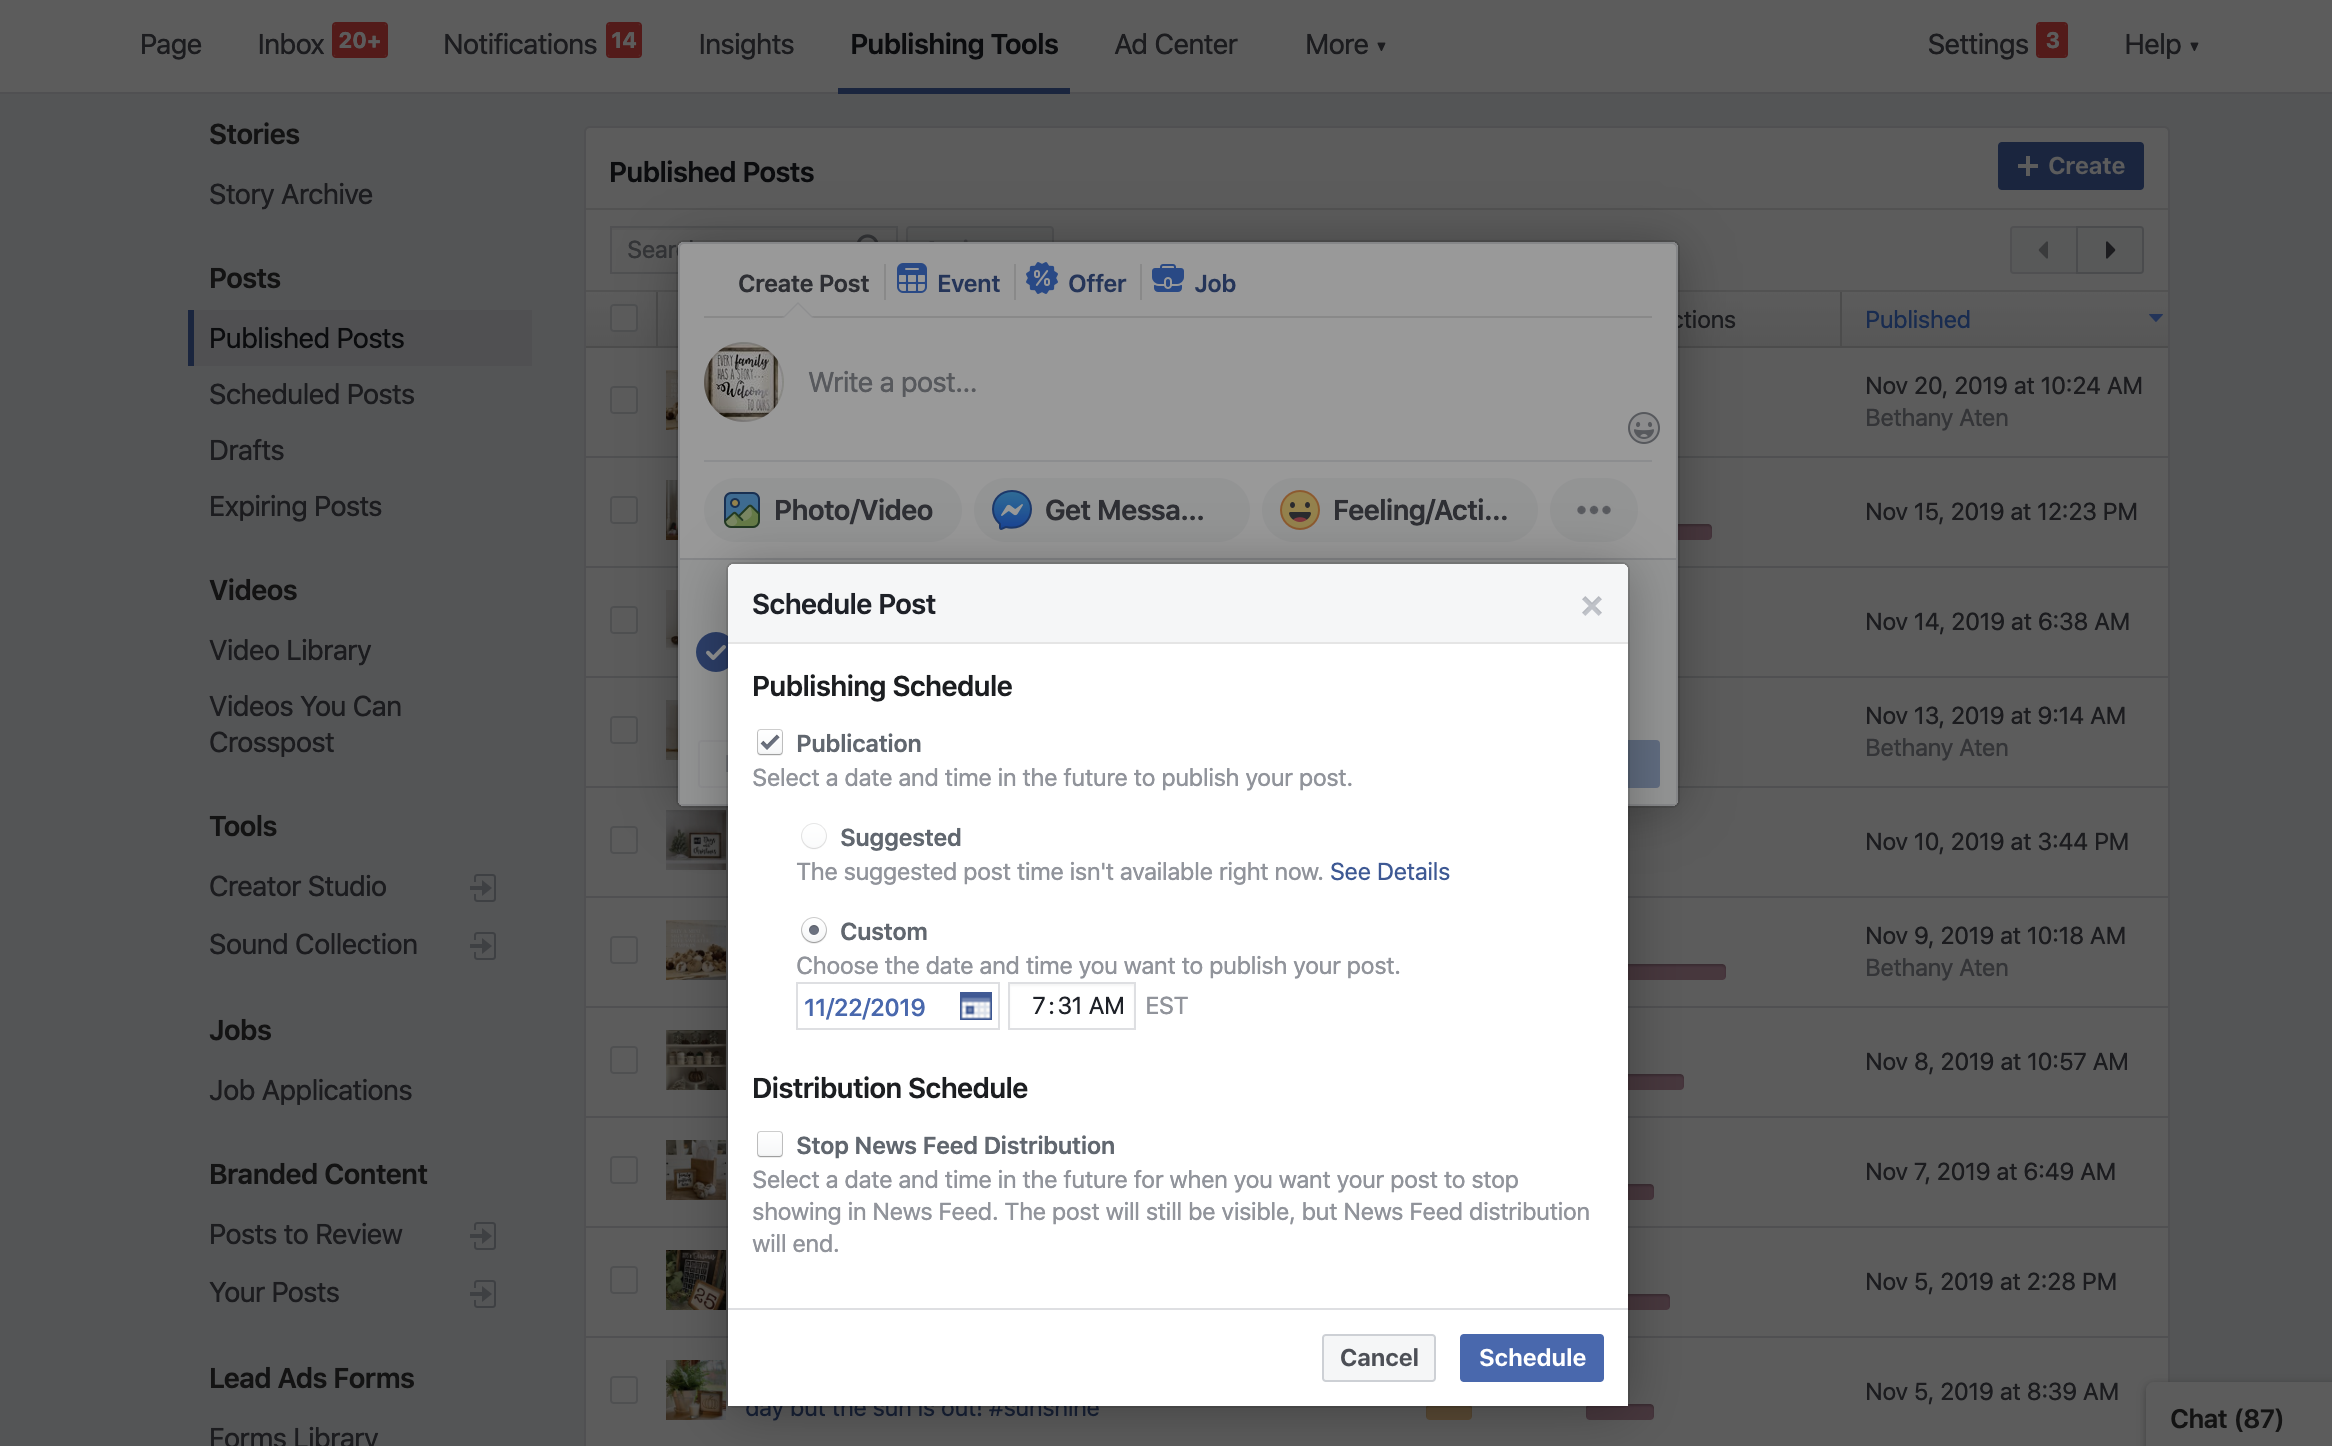 Facebook's scheduler tool interface